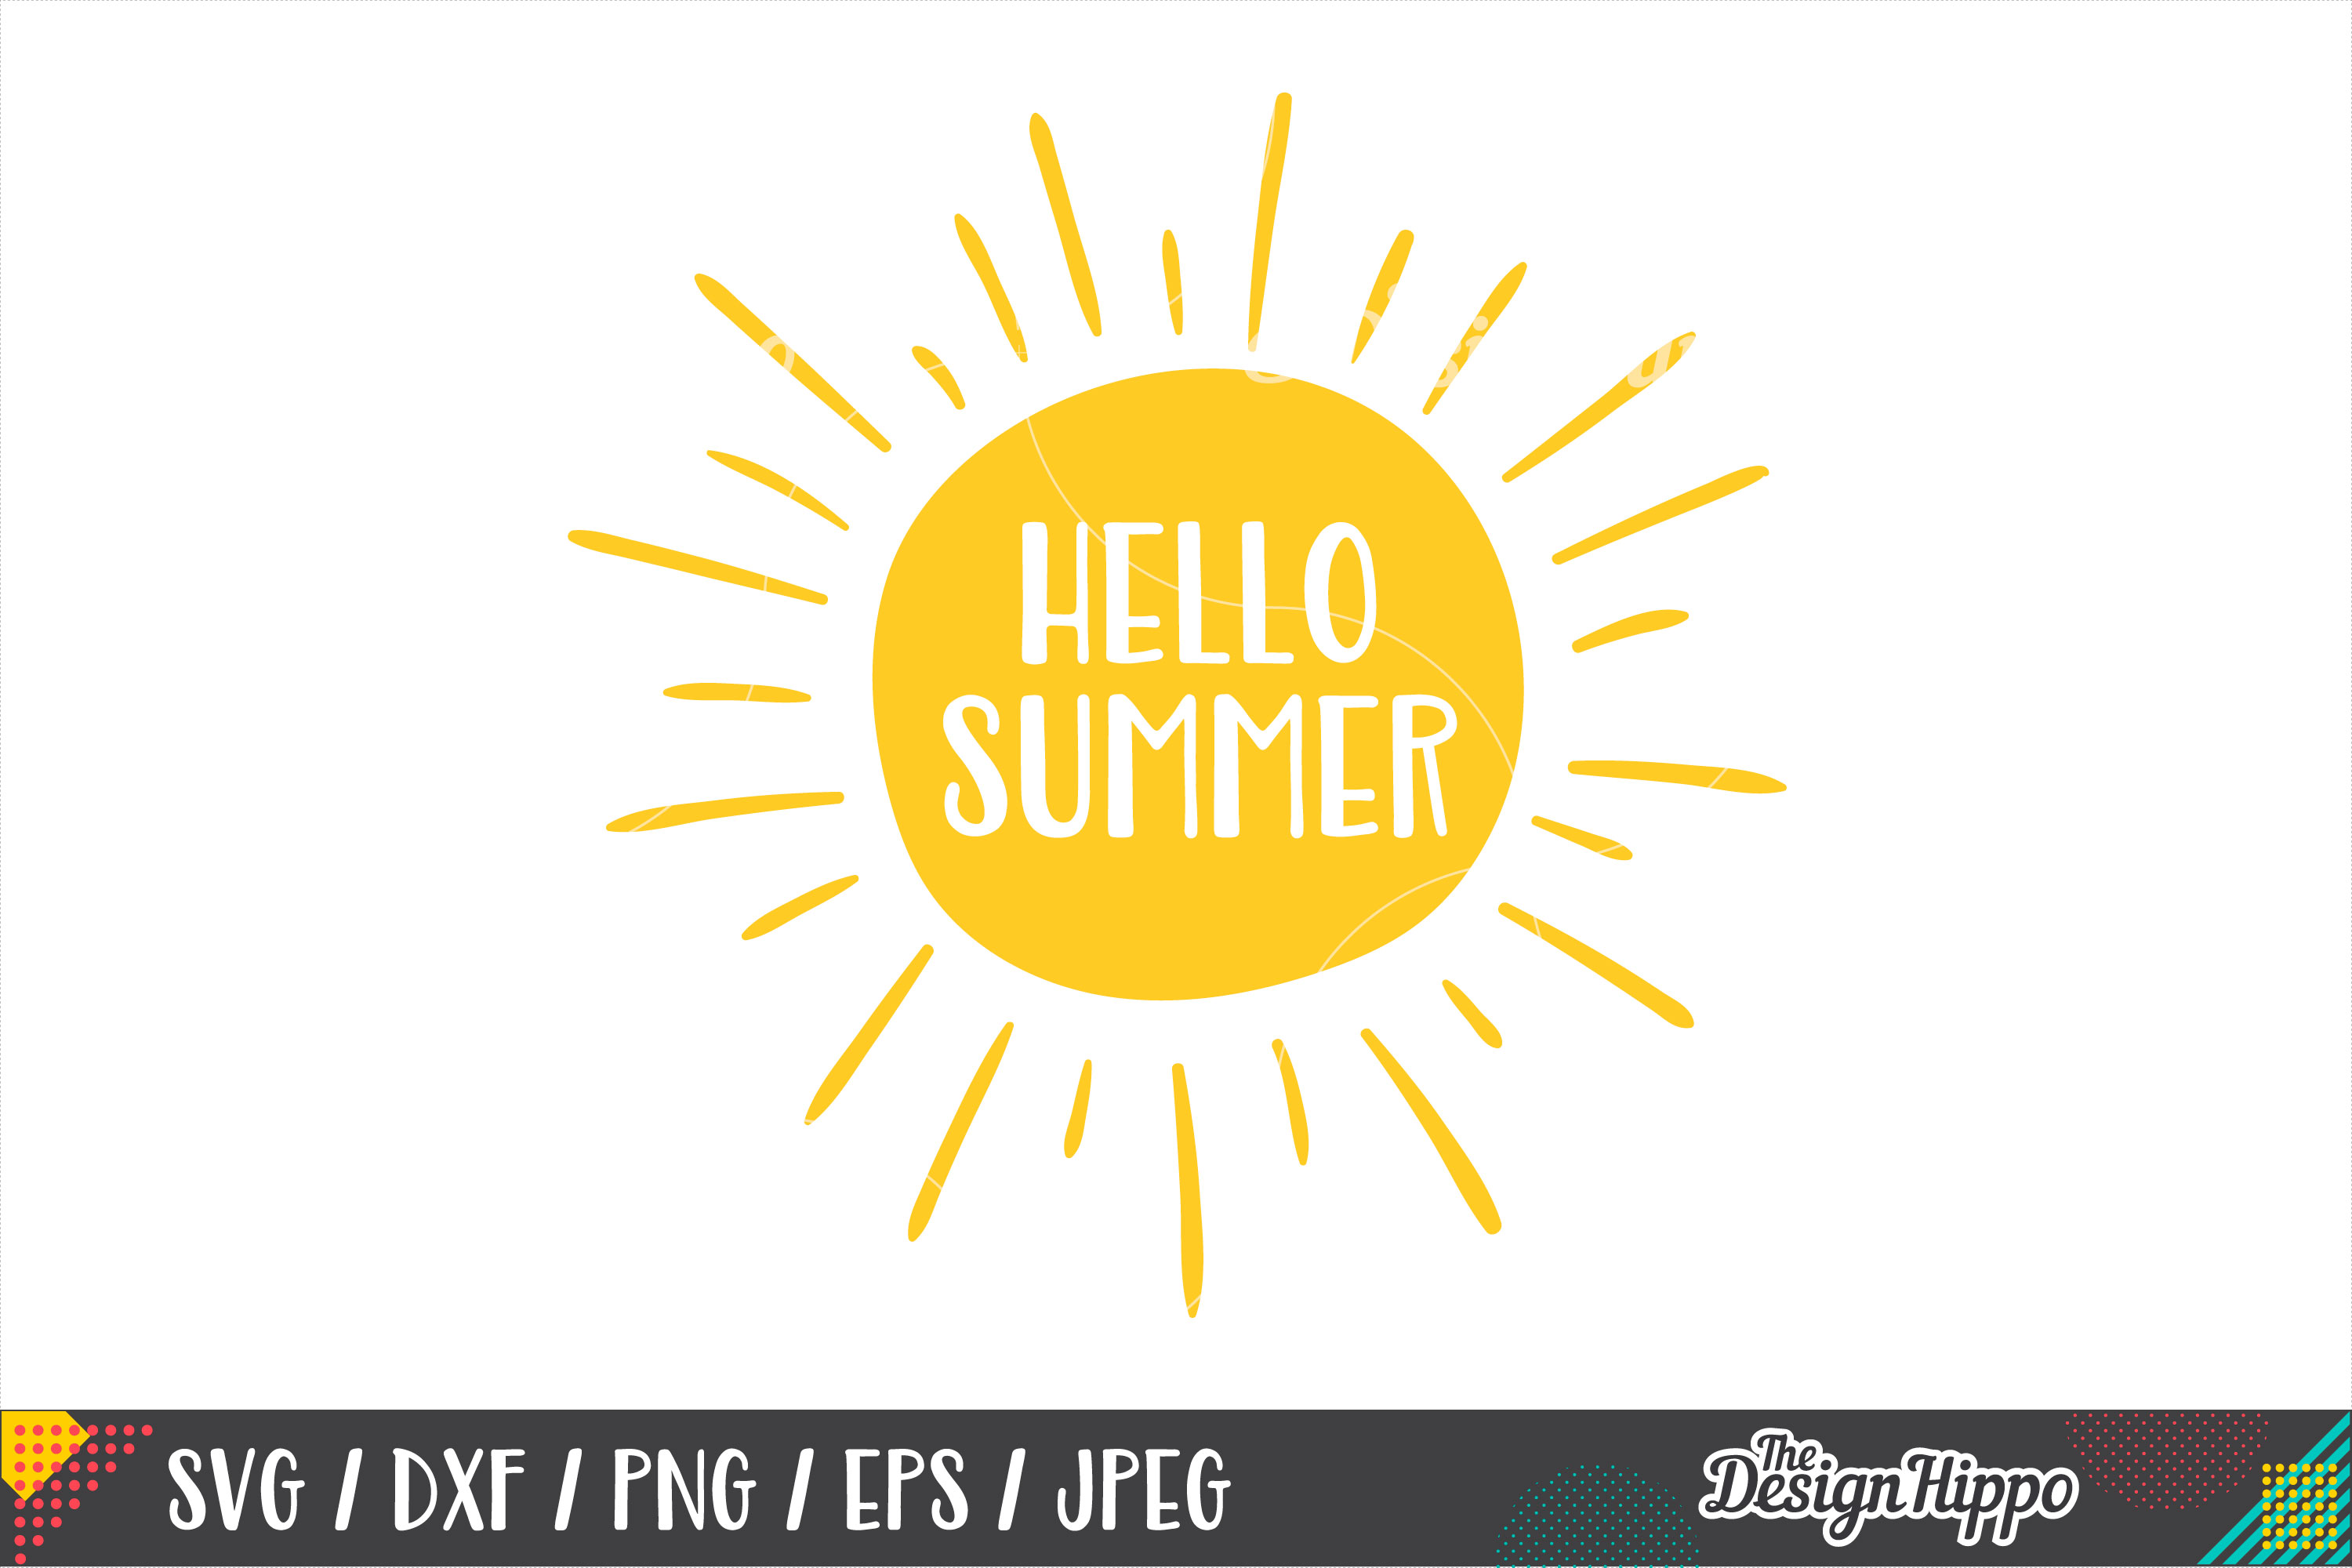 Hello Summer SVG, Beach, Funny, SVG PNG DXF Cricut Cut Files example image 1